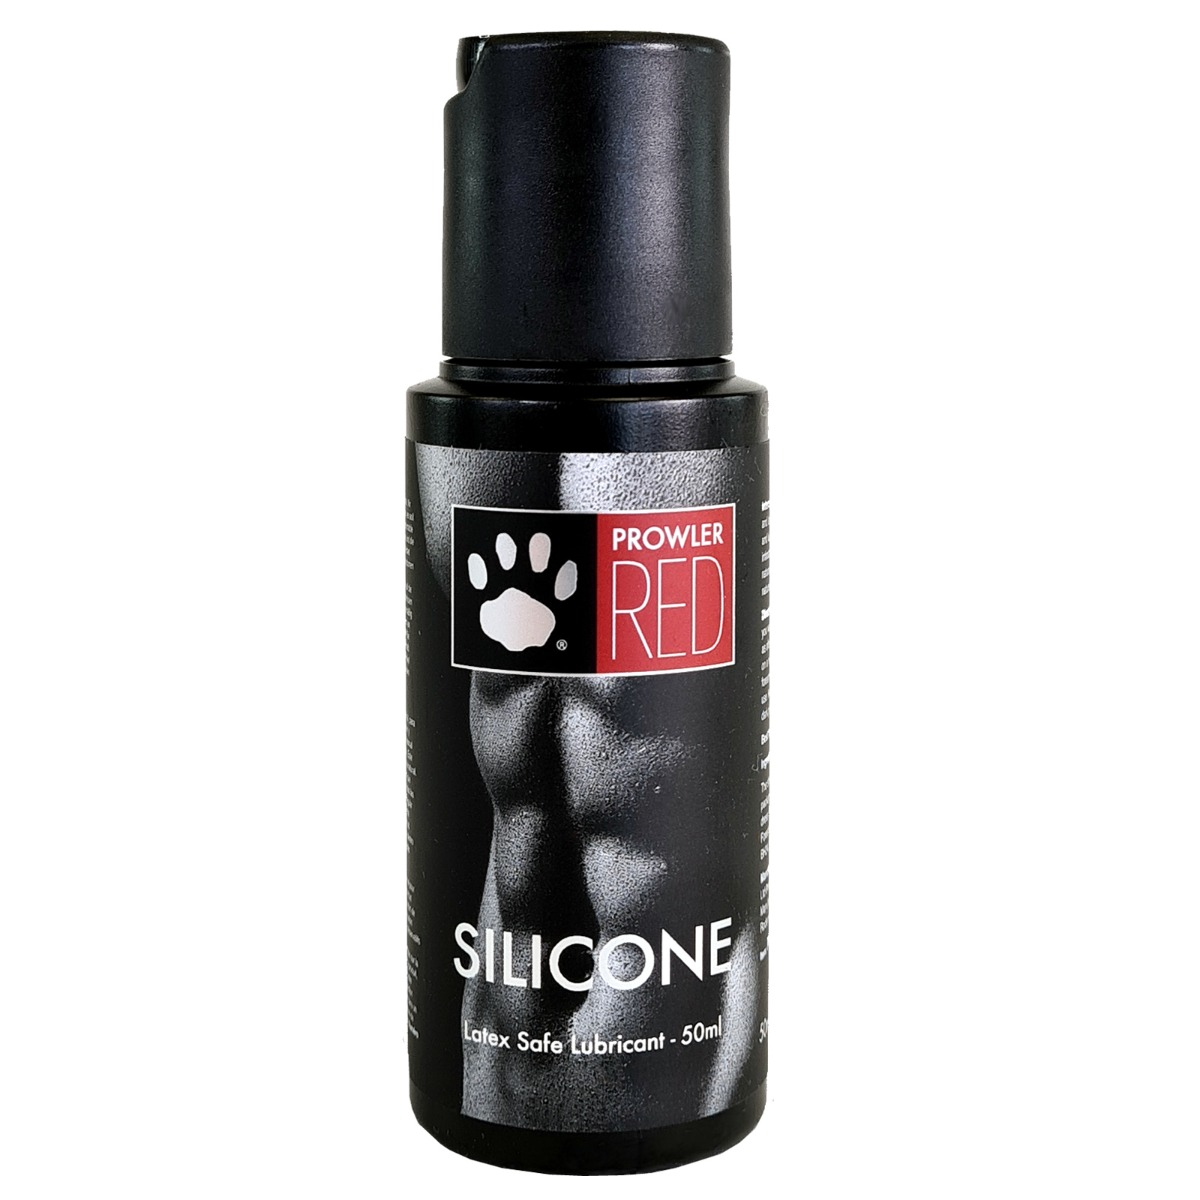 Prowler RED Silicone silicone-base Lube 50ml